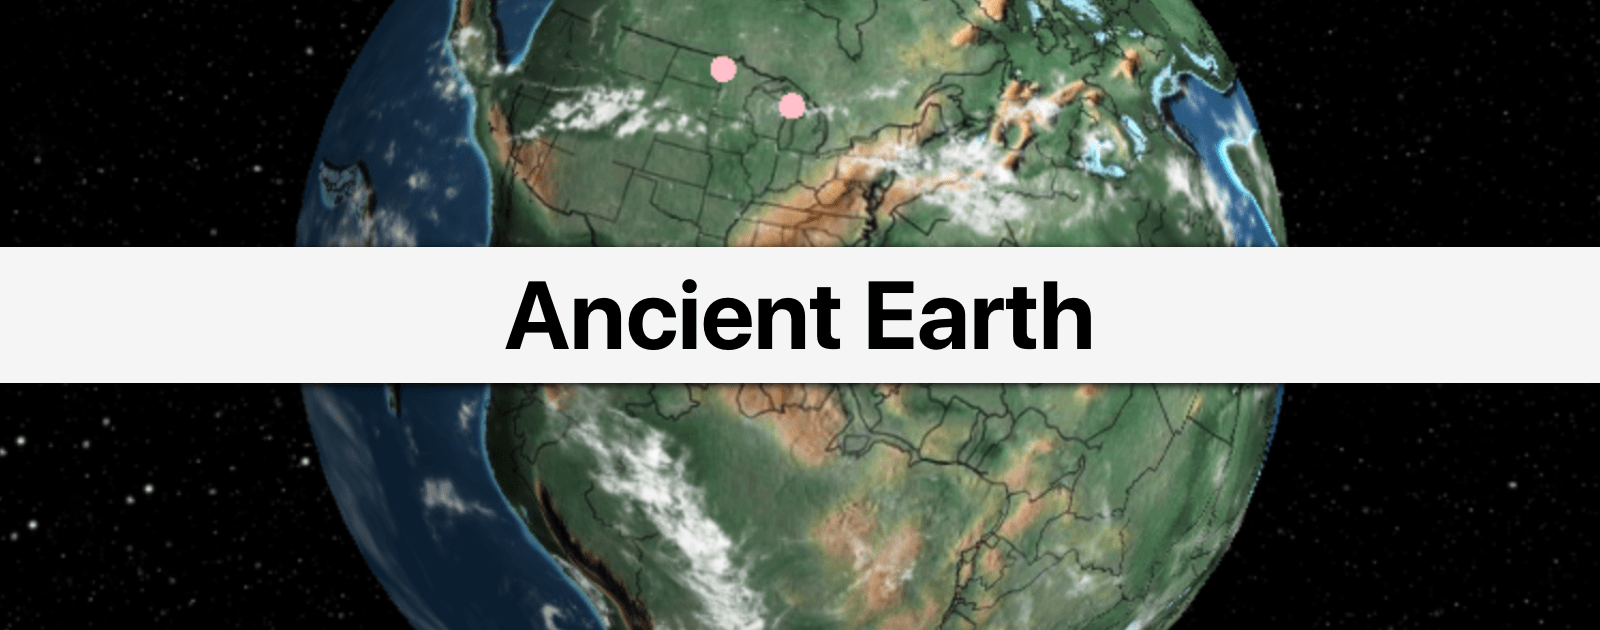 Here's What Your City Looked Like up to 750 Million Years Ago